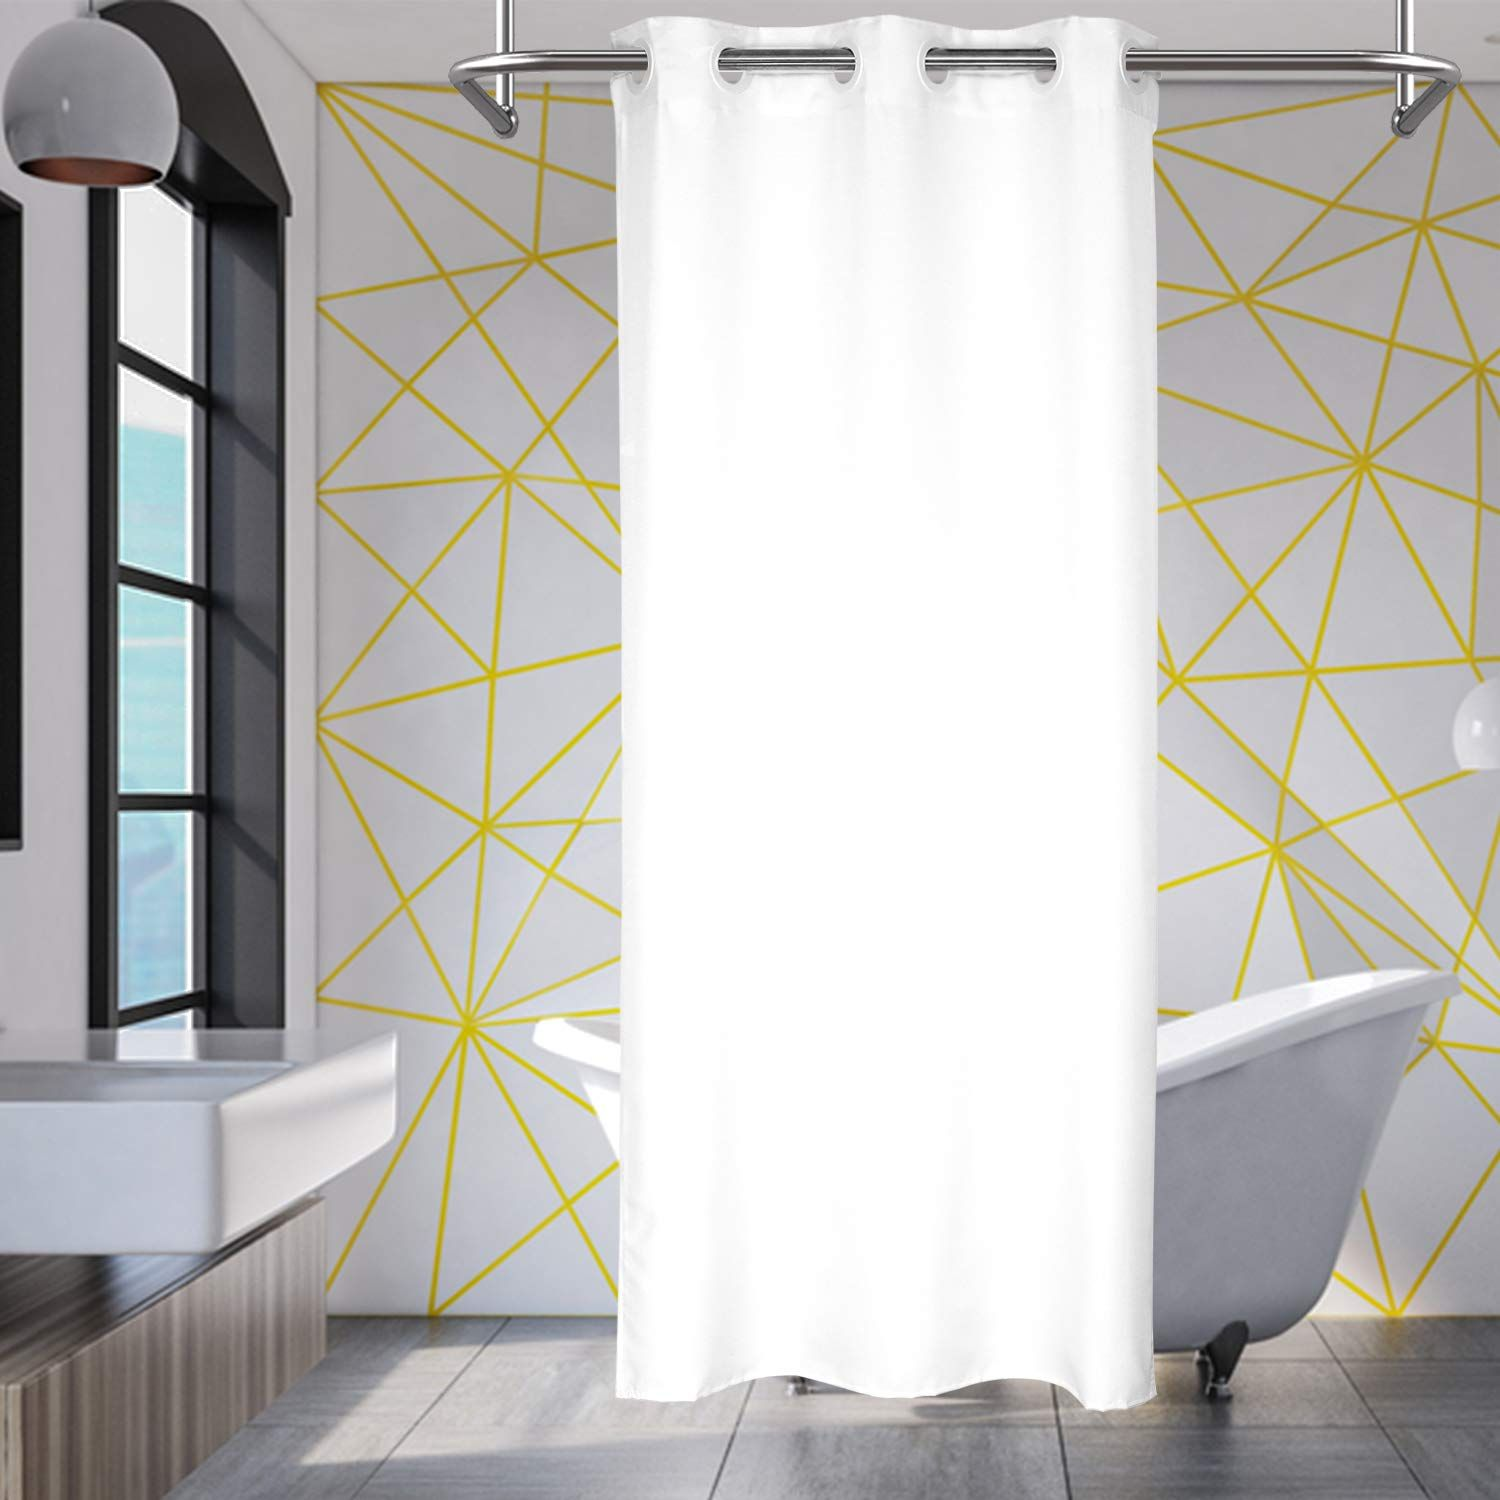 River Dream No Hooks Needed Small Fabric Shower Curtain Or Liner